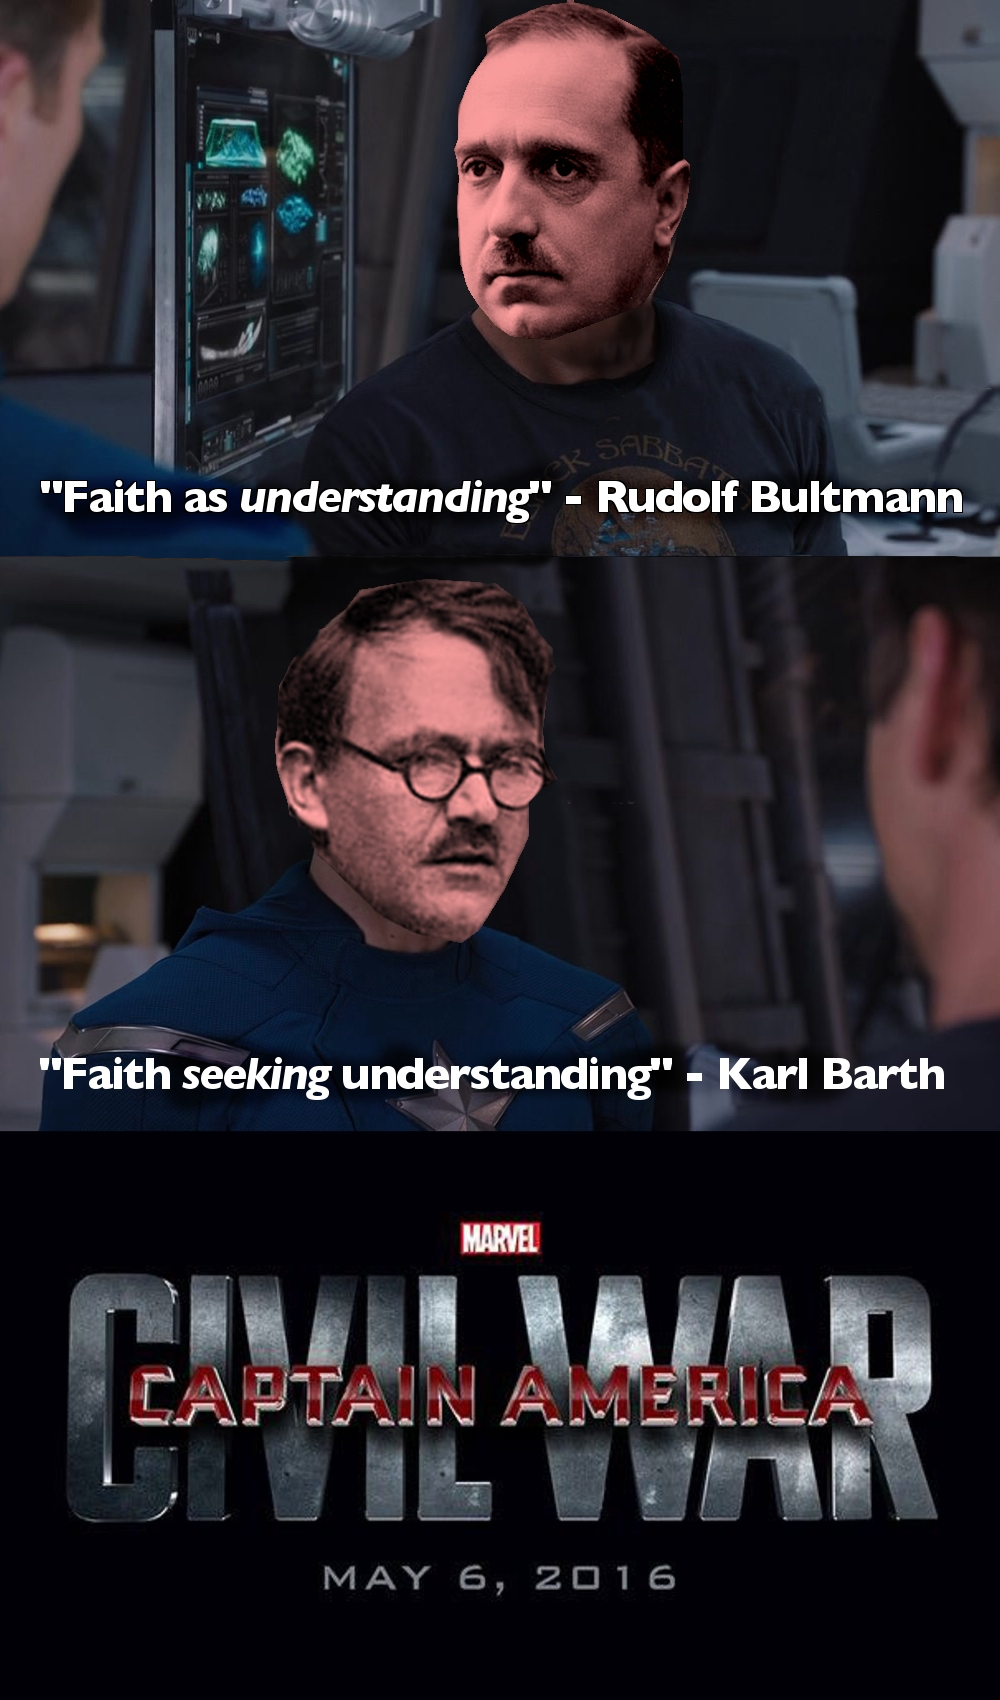 Karl Barth vs Rudolf Bultmann: Civil War